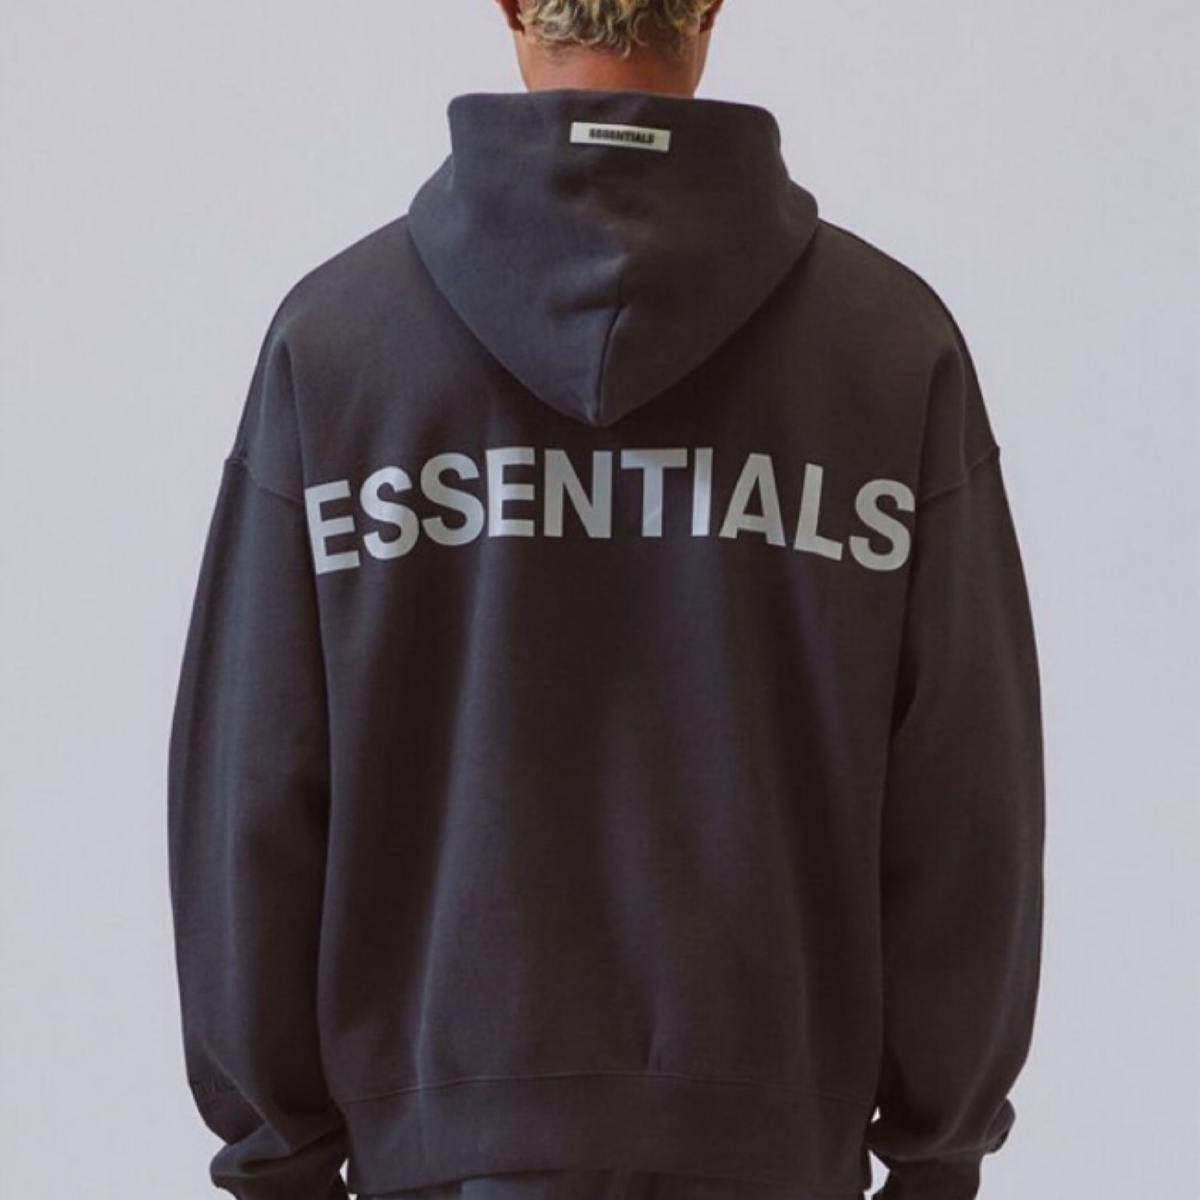 is my fear of god essentials fake